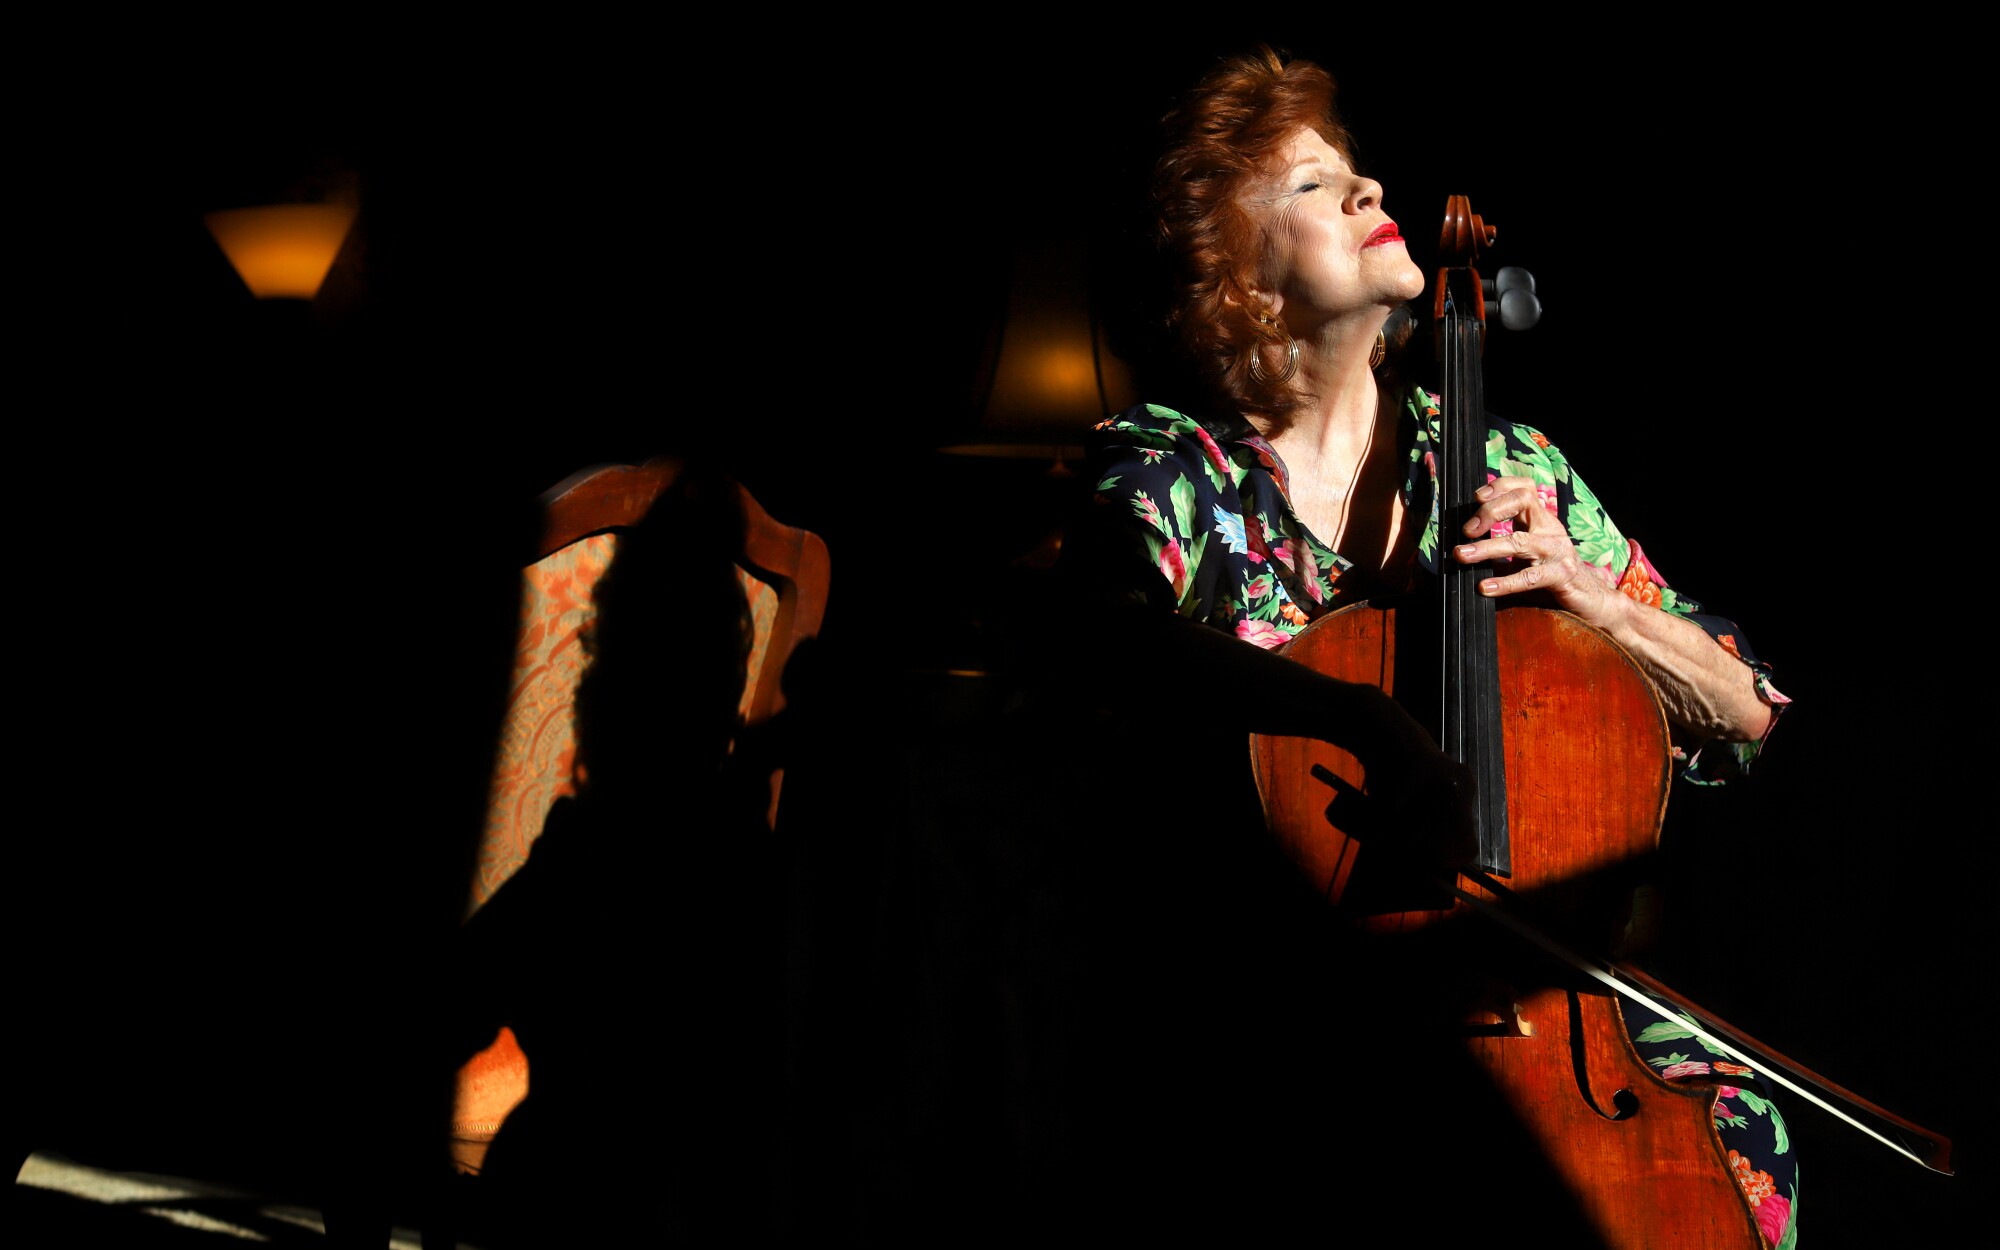 Christine Walevska, a master cellist, has played all over the world during her long career.